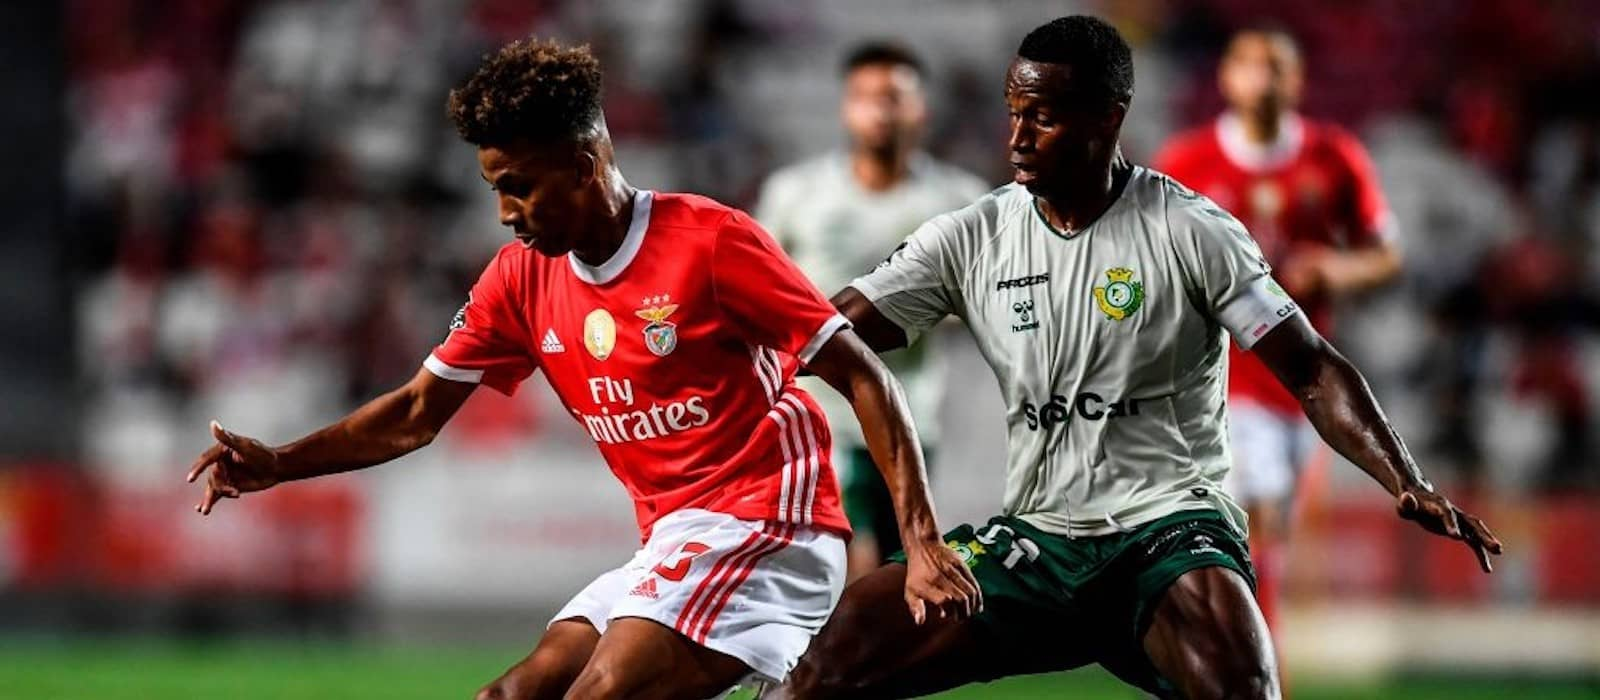 Manchester United face competition for Benfica star Gedson Fernandes